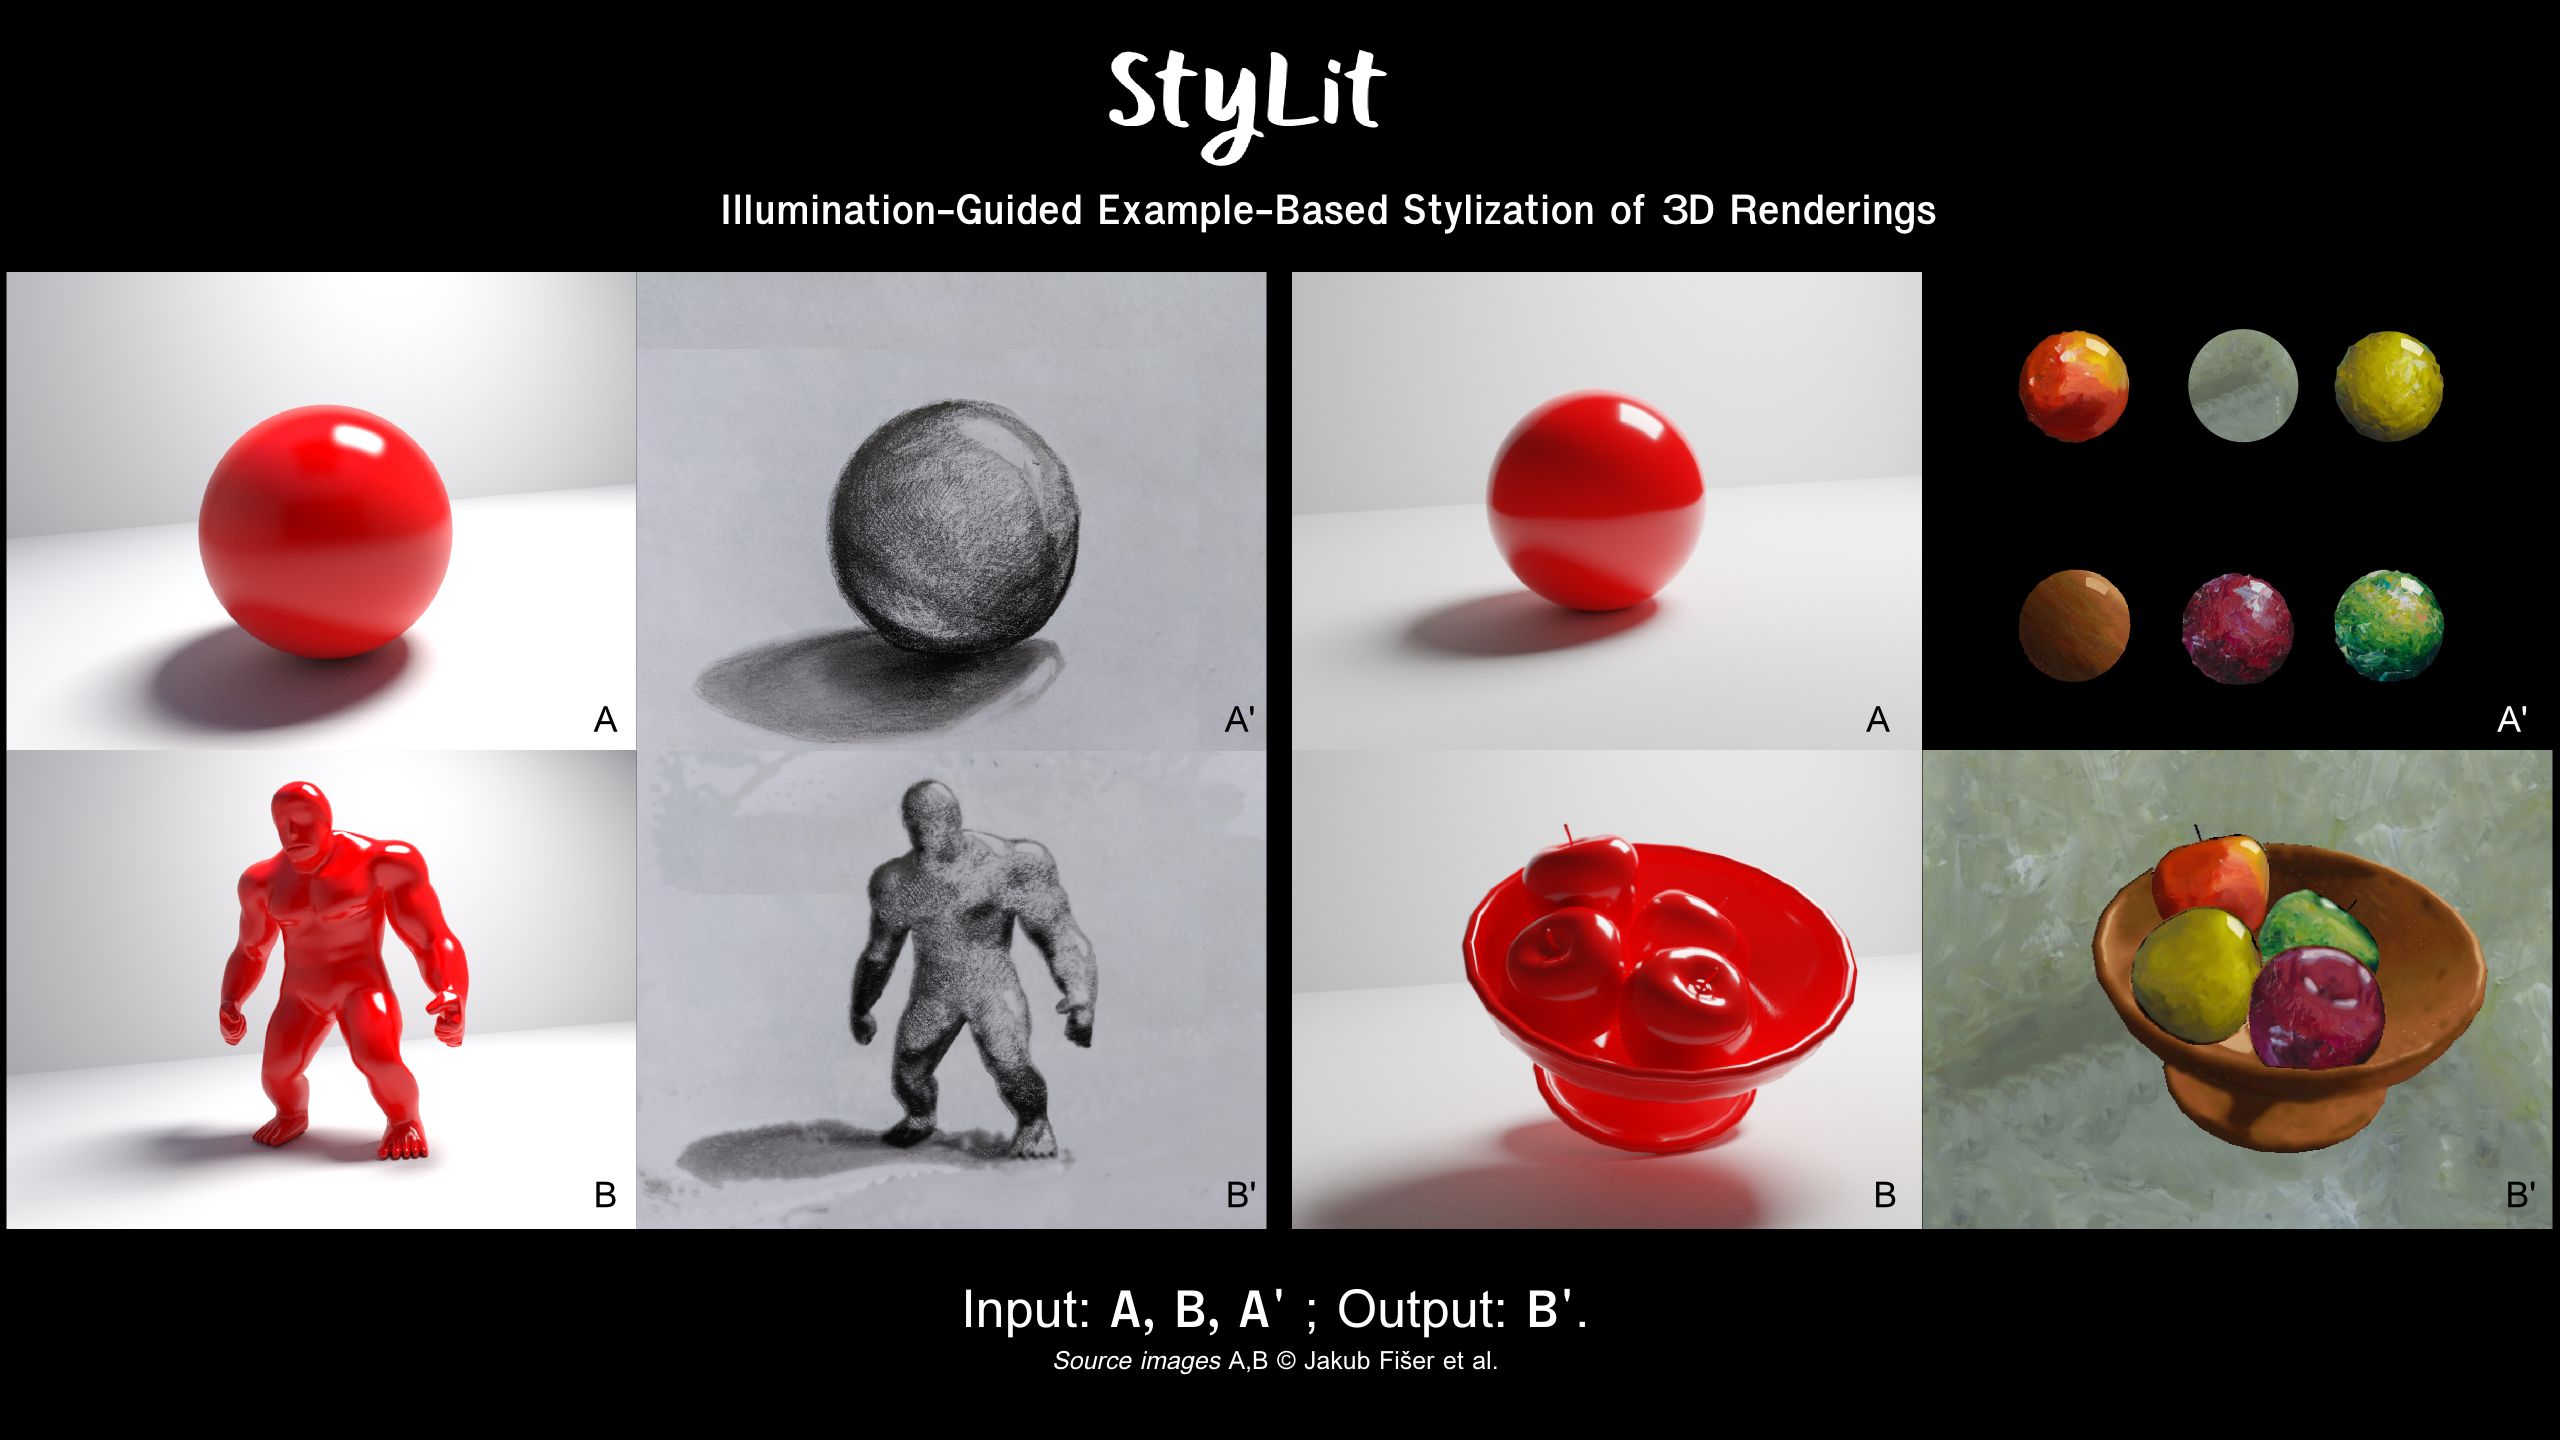 Two tools for transferring illustration styles to 3D models and live footage